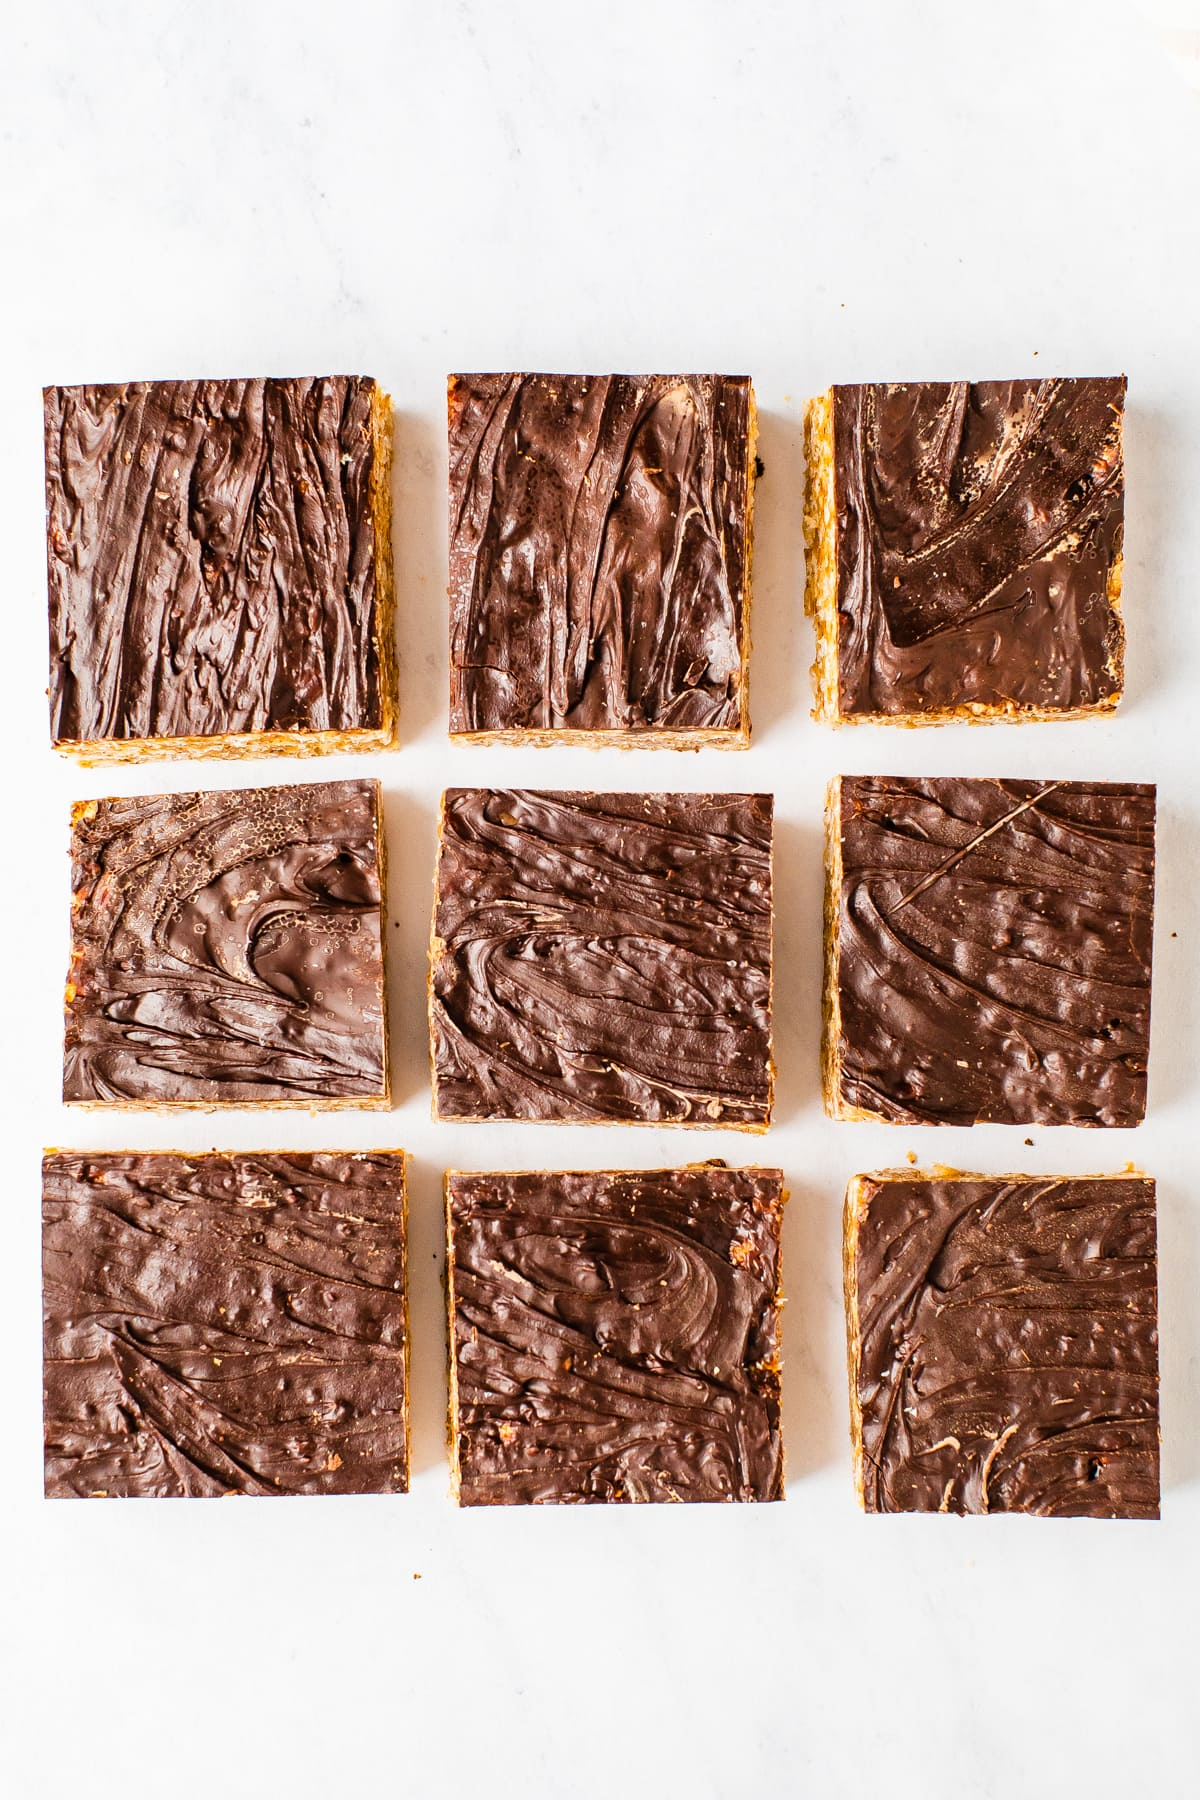 9 squares of rice krispie treats topped with chocolate.